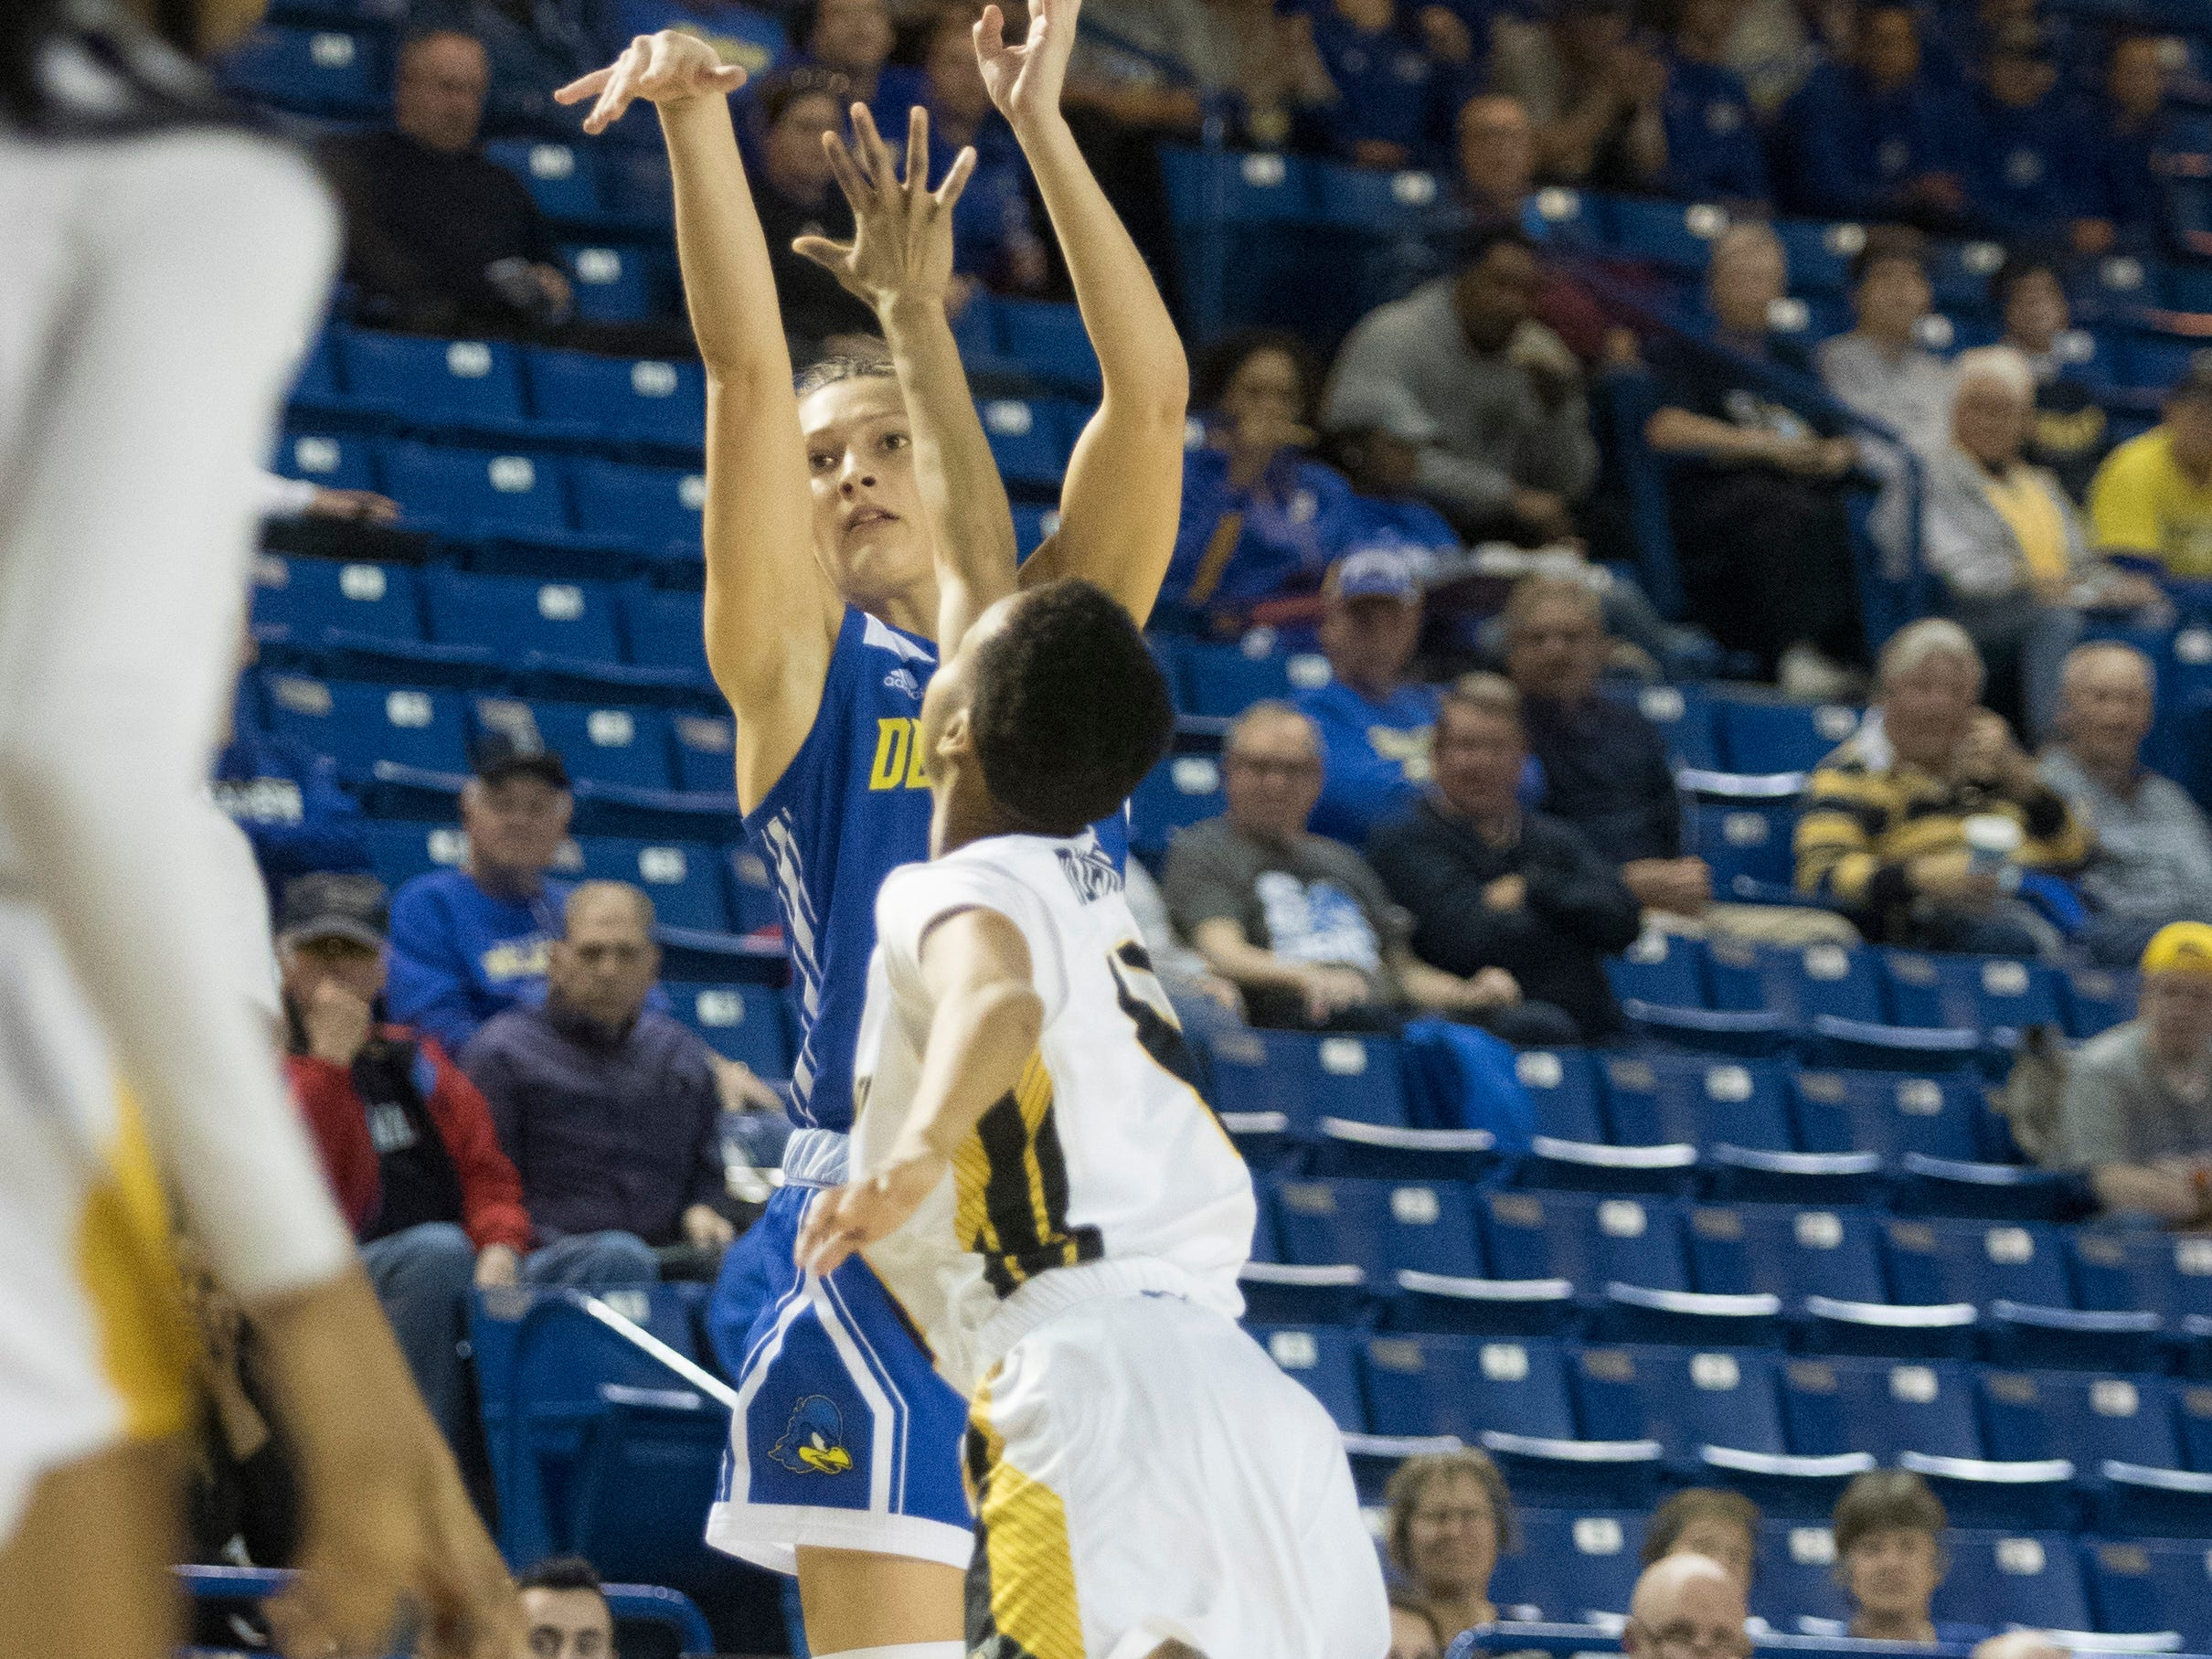 Delaware's Abby Gonzales (2) shoots a jump shot Thursday night against Towson in the CAA quarterfinals. Towson defeated Delaware 59-49.